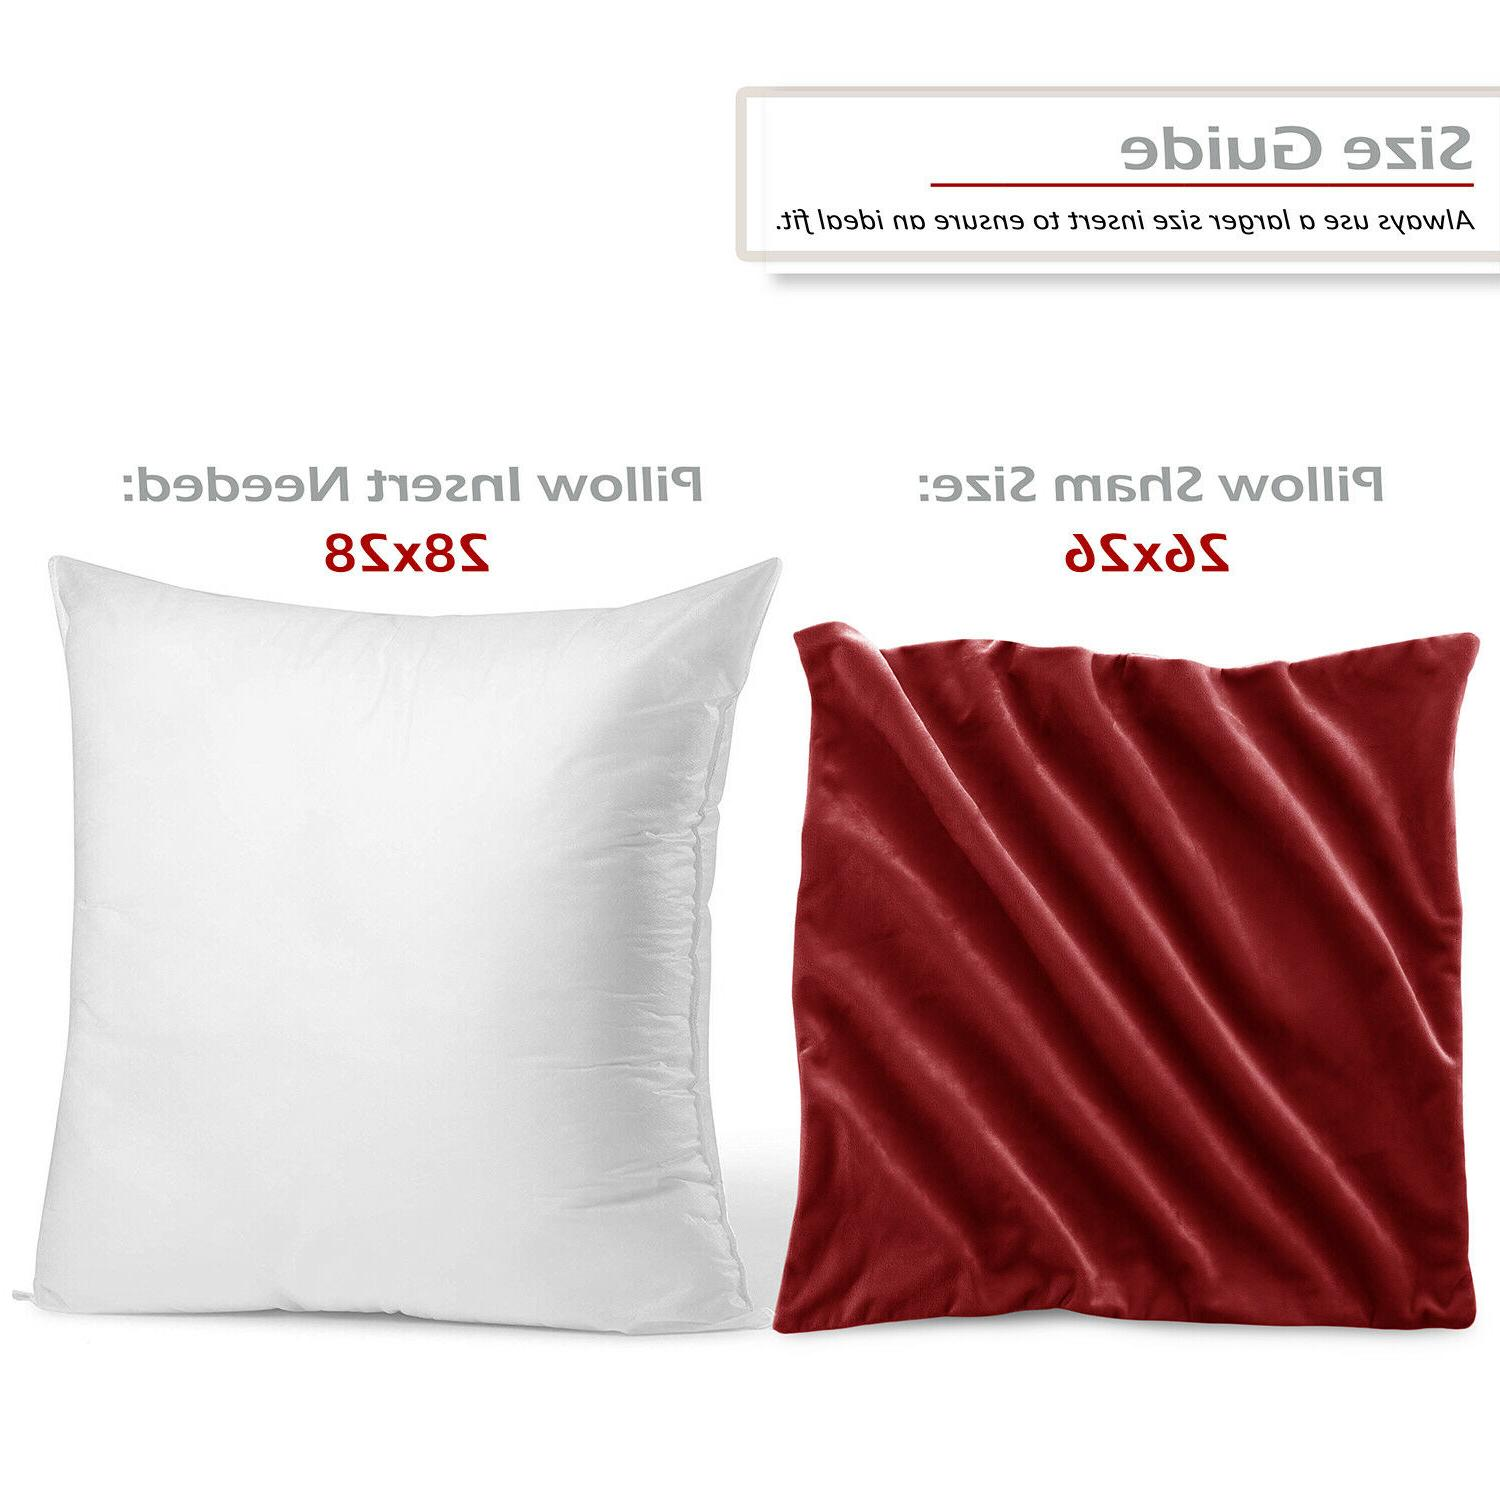 Throw Pillow Covers of Velvet Cases Sizes 36 Colors!